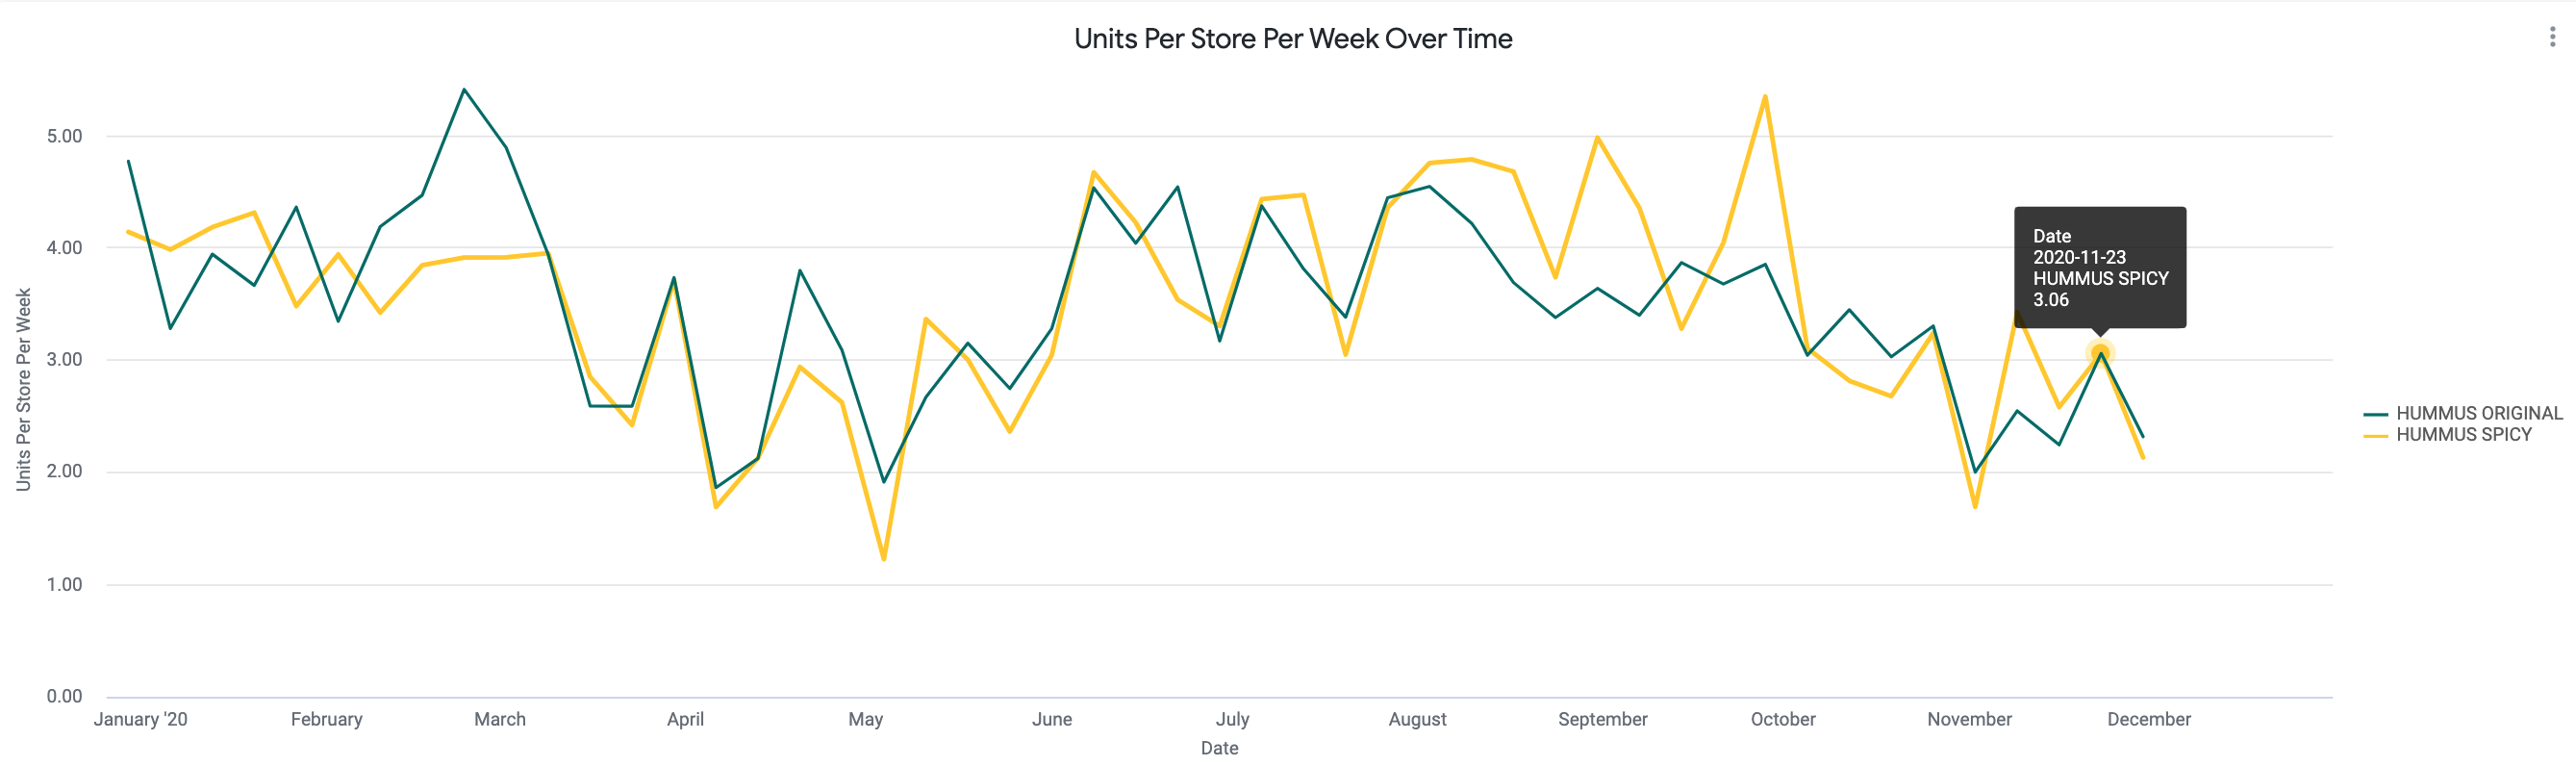 Units_Per_Store_Per_Week_Over_Time.png